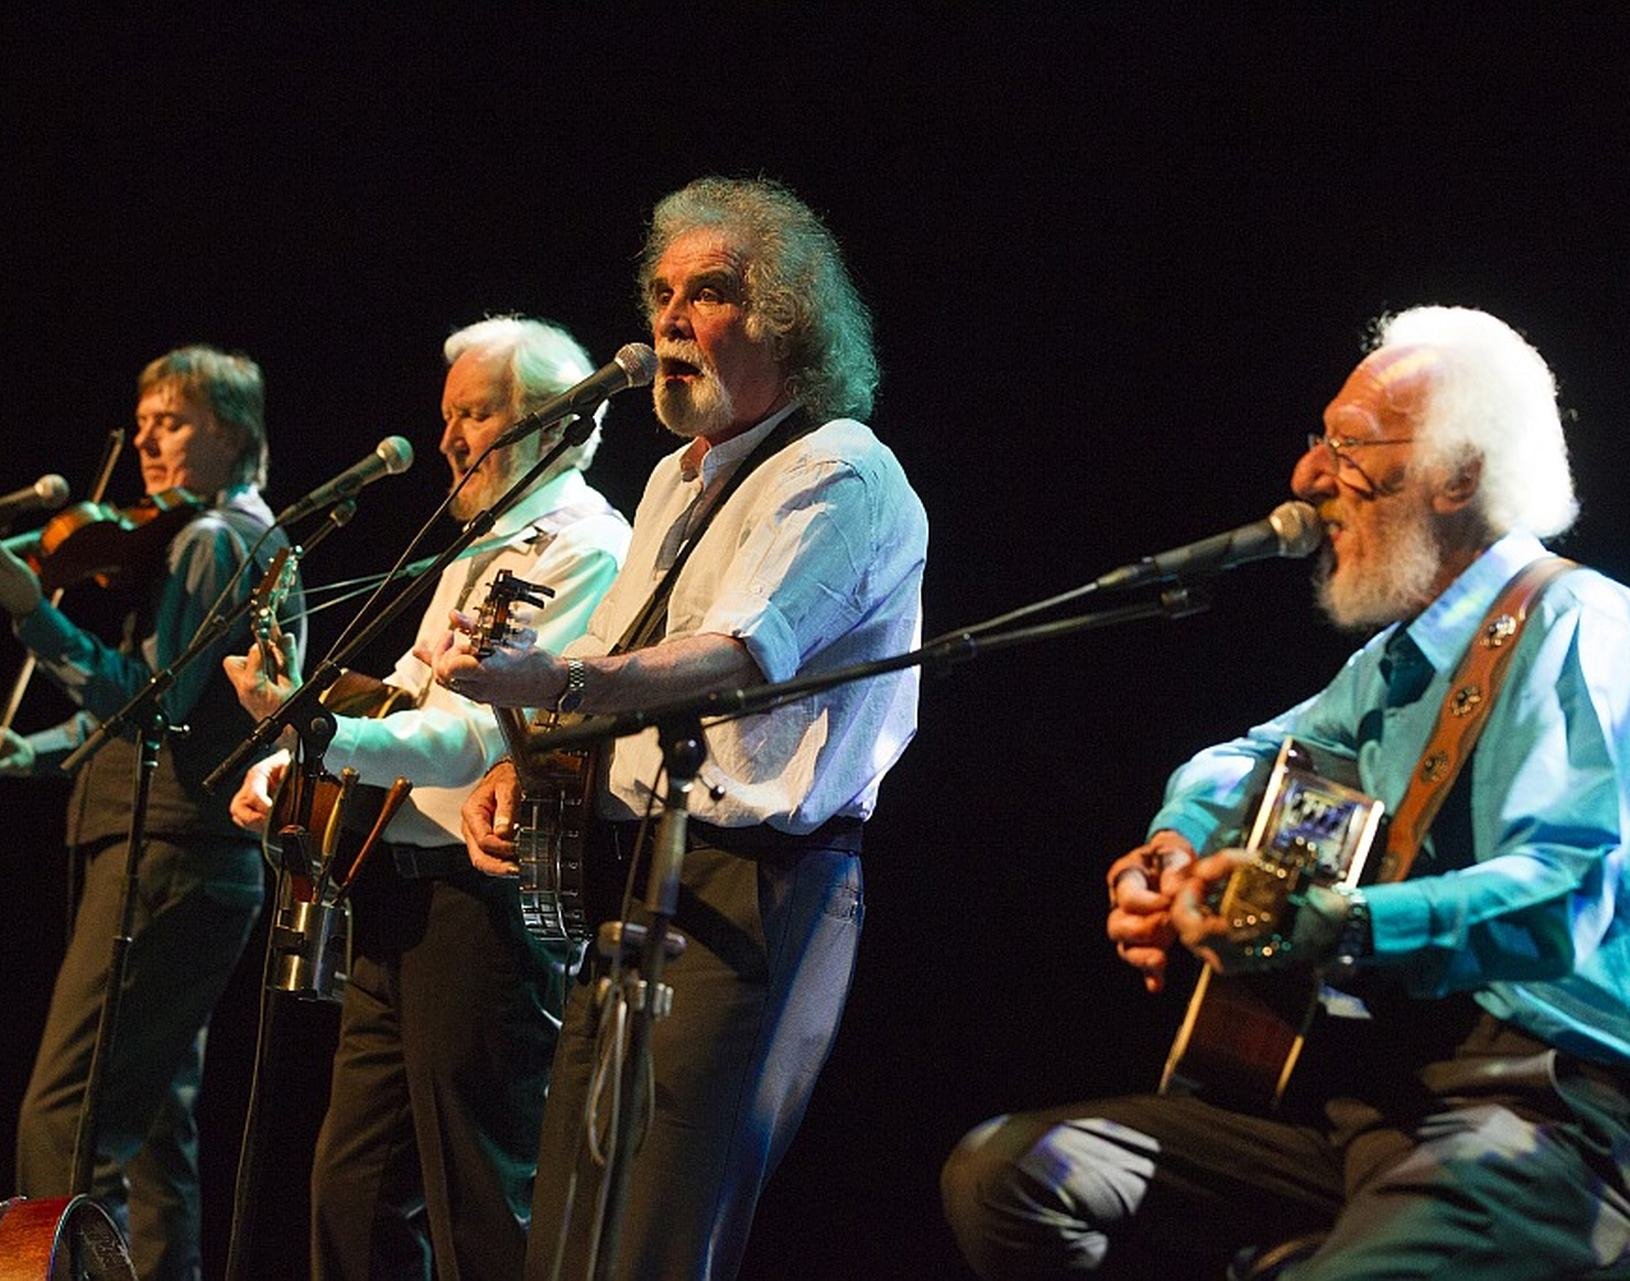 The Dublin Legends, formerly known as the Dubliners speelden op het Irish Folk Festival in De Tamboer.